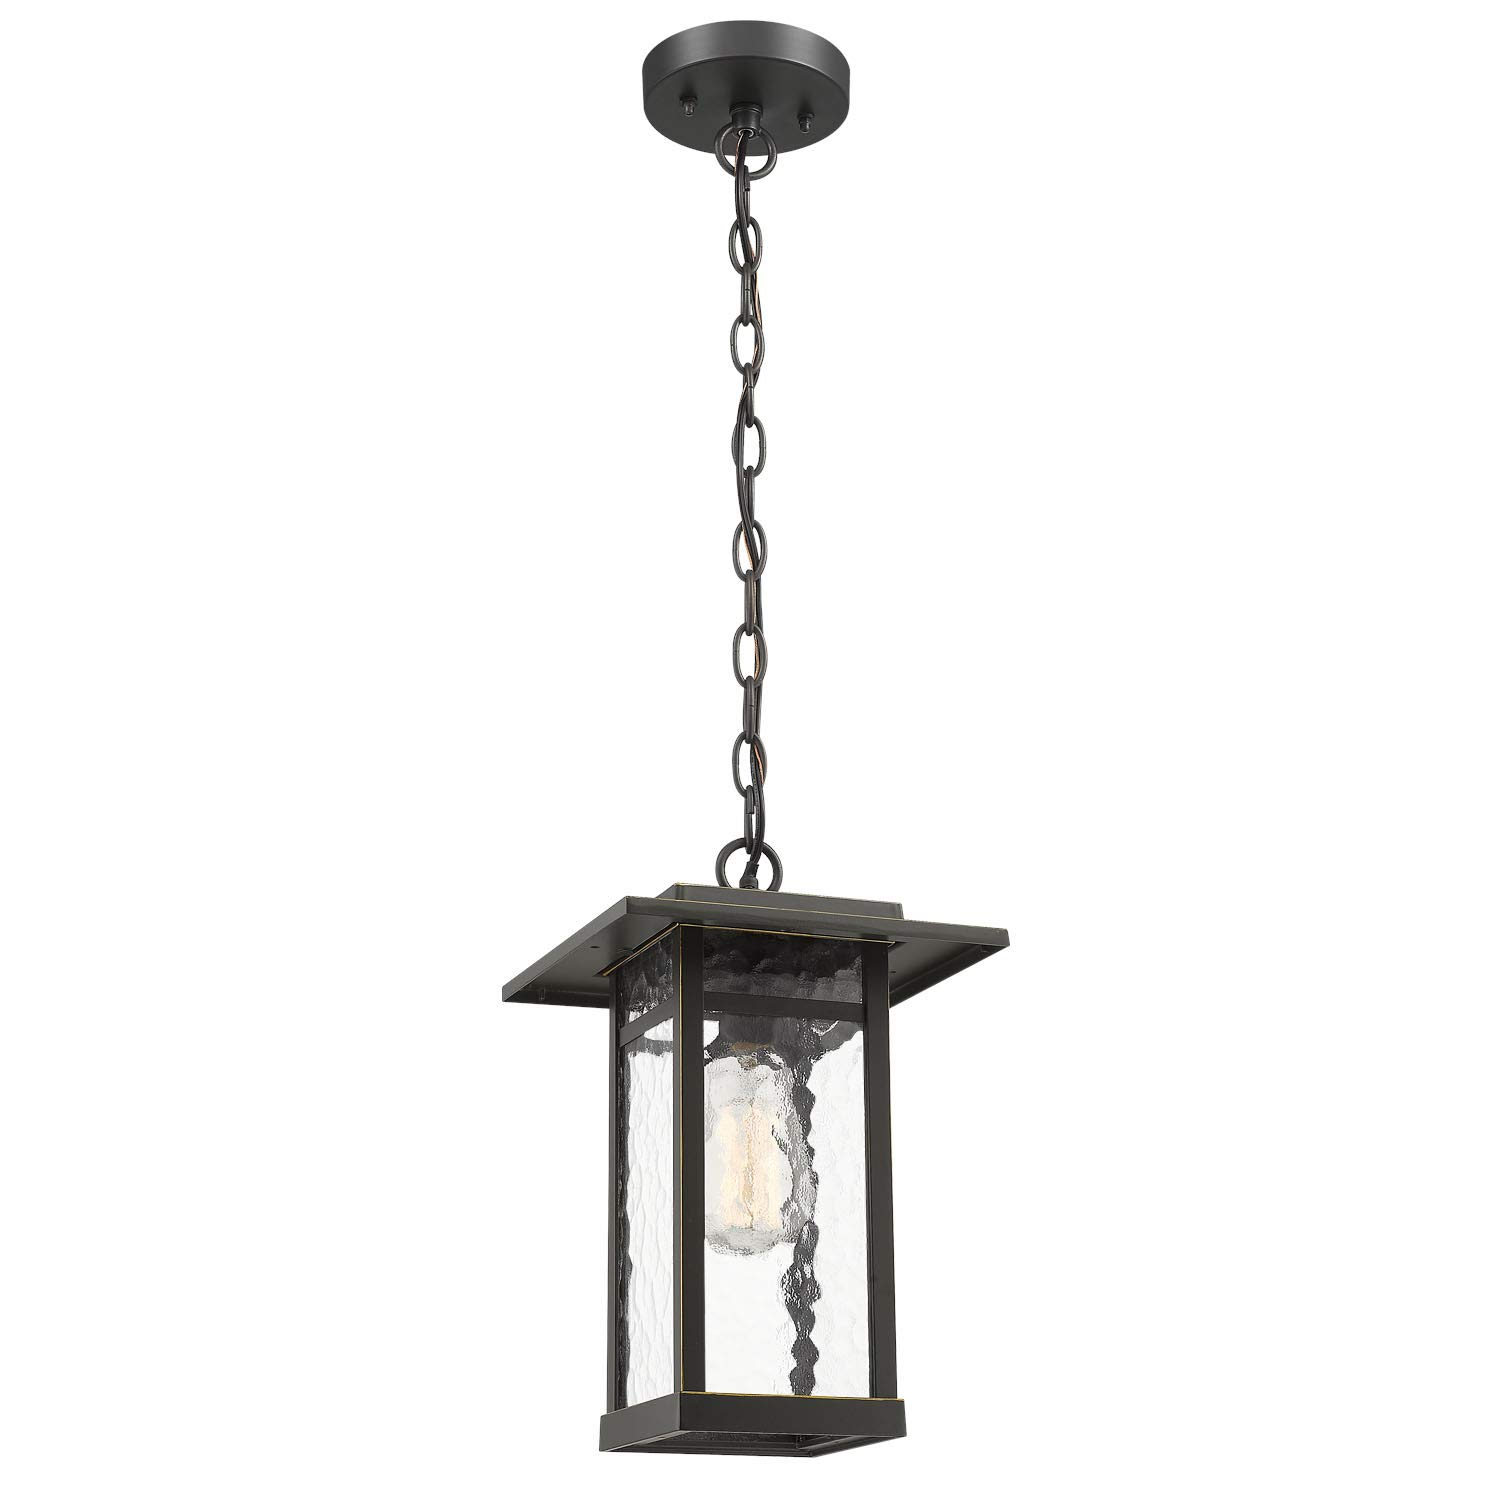 Outdoor Pendant Light, Beionxii 1-Light Exterior Hanging Lantern in Oil Rubbed Bronze Finish with Water Ripple Glass Shade, Pendant Chain Adjustable